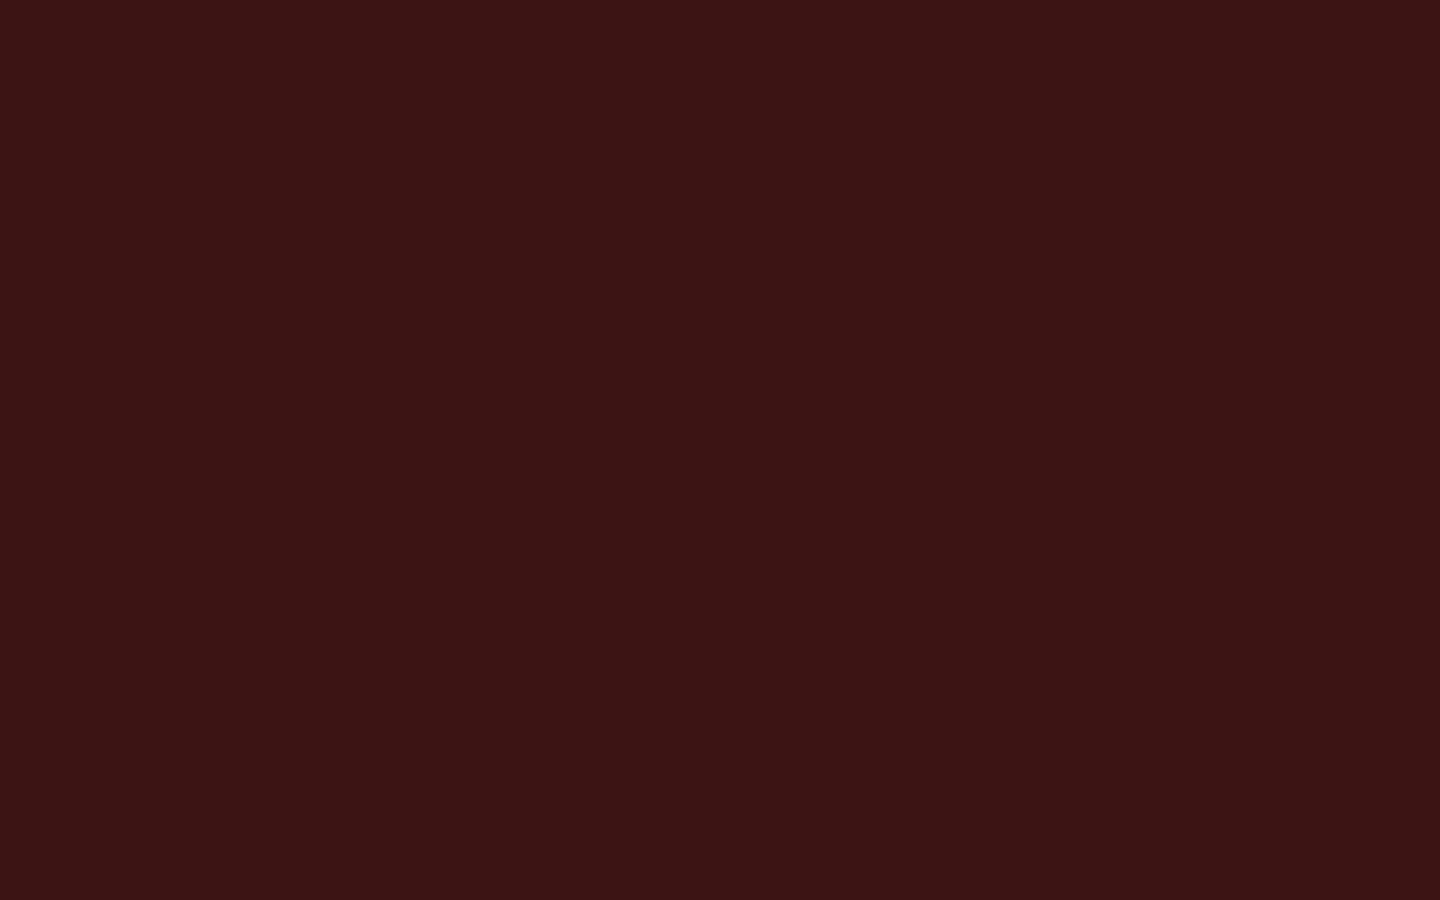 1440x900 Dark Sienna Solid Color Background